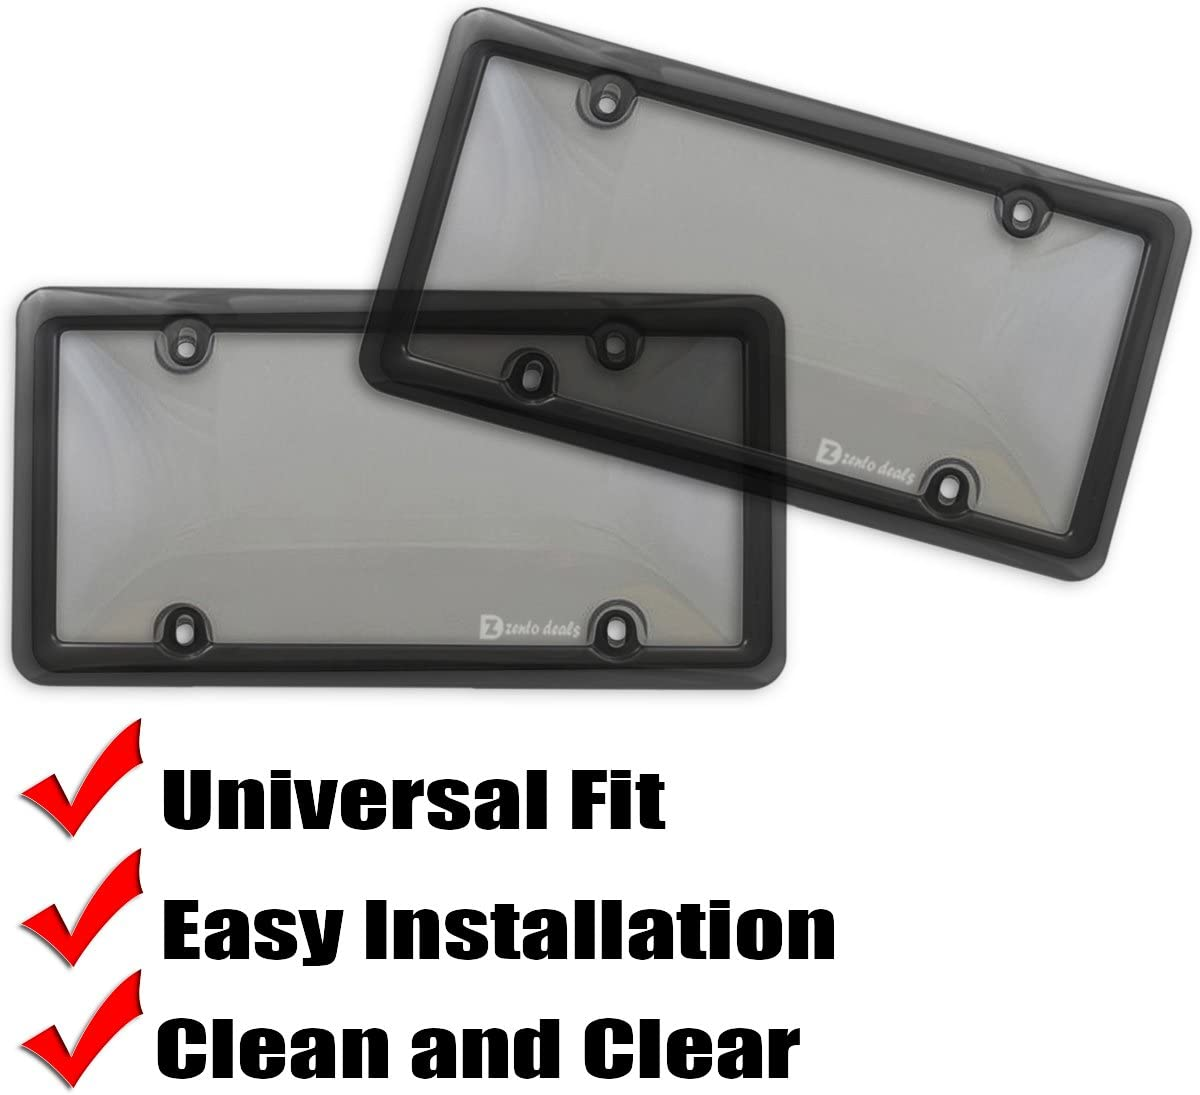 Combo Shield Premium Quality License Plate Clear Smoked Black Bubble Shield and Frame GA45 Zento Deals Clear Smoked License Plate Cover and Frame